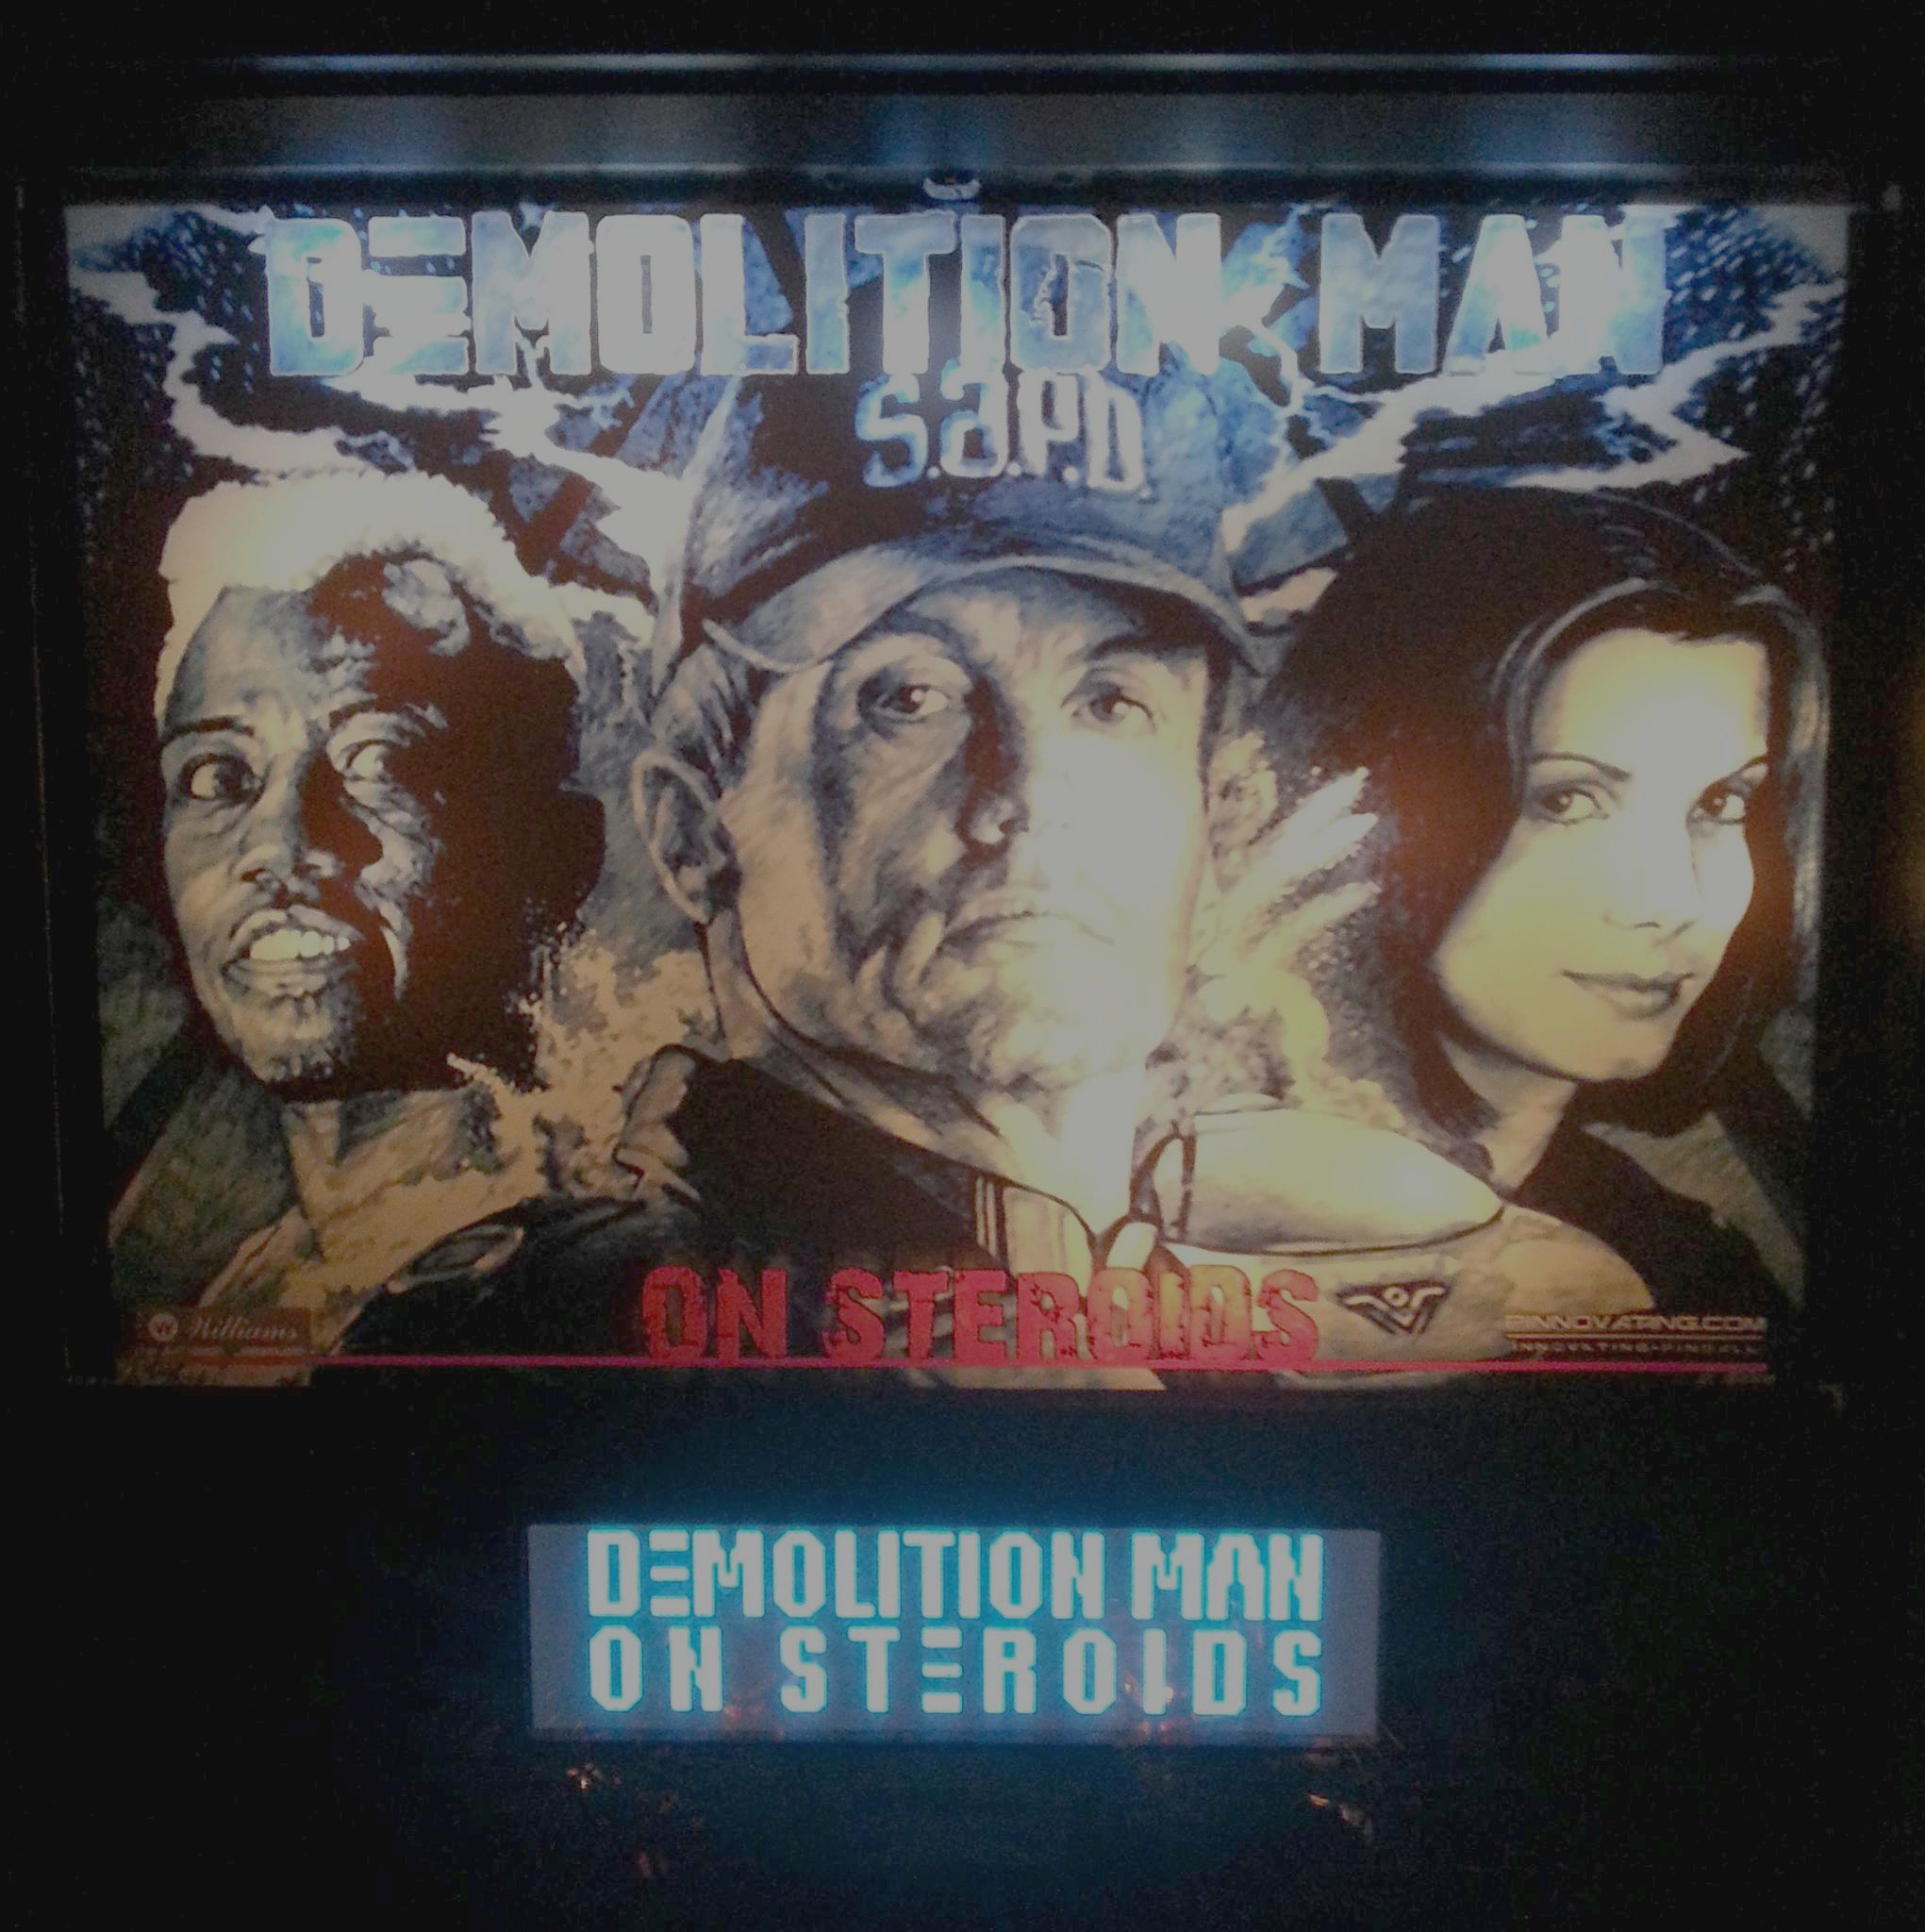 Demolition Man on Steroids updates